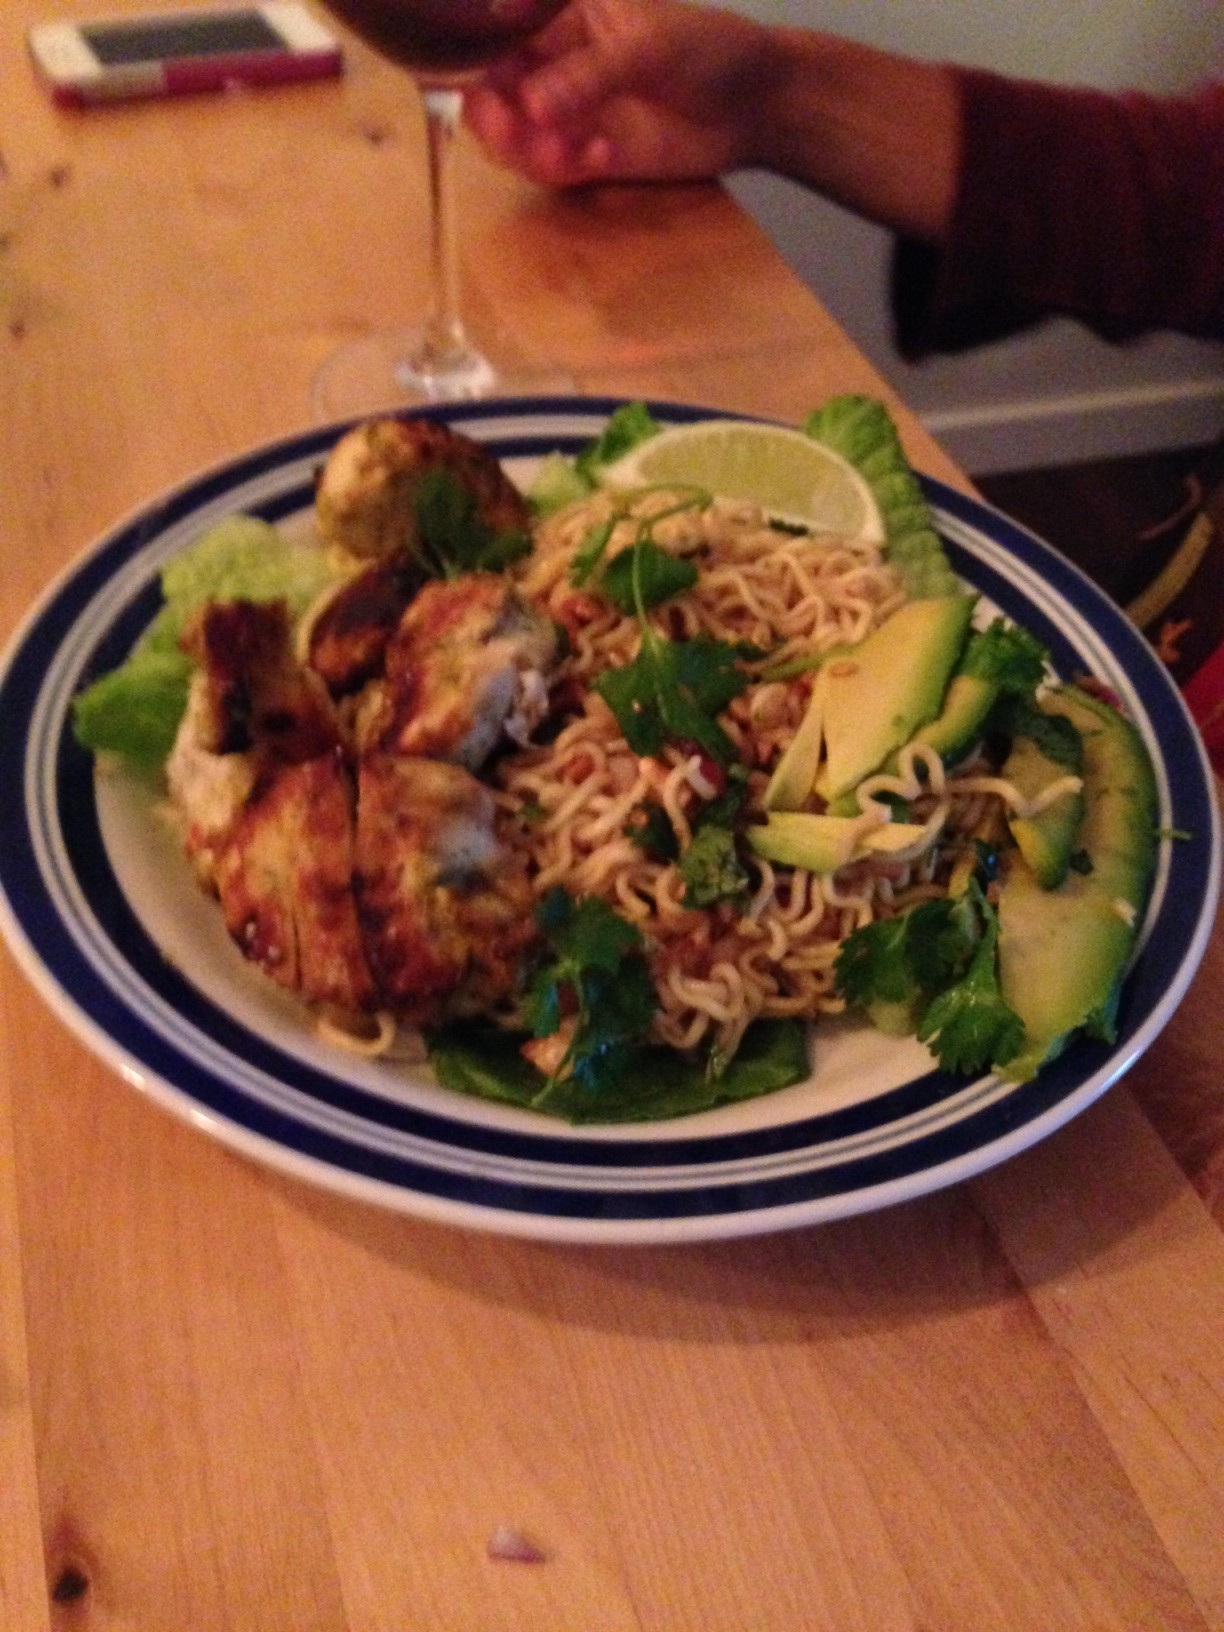 Girl S Night Jamie Oliver S Chicken Skewers Satay Sauce And Fiery Noodle Salad Julie S Kitchen Adventures